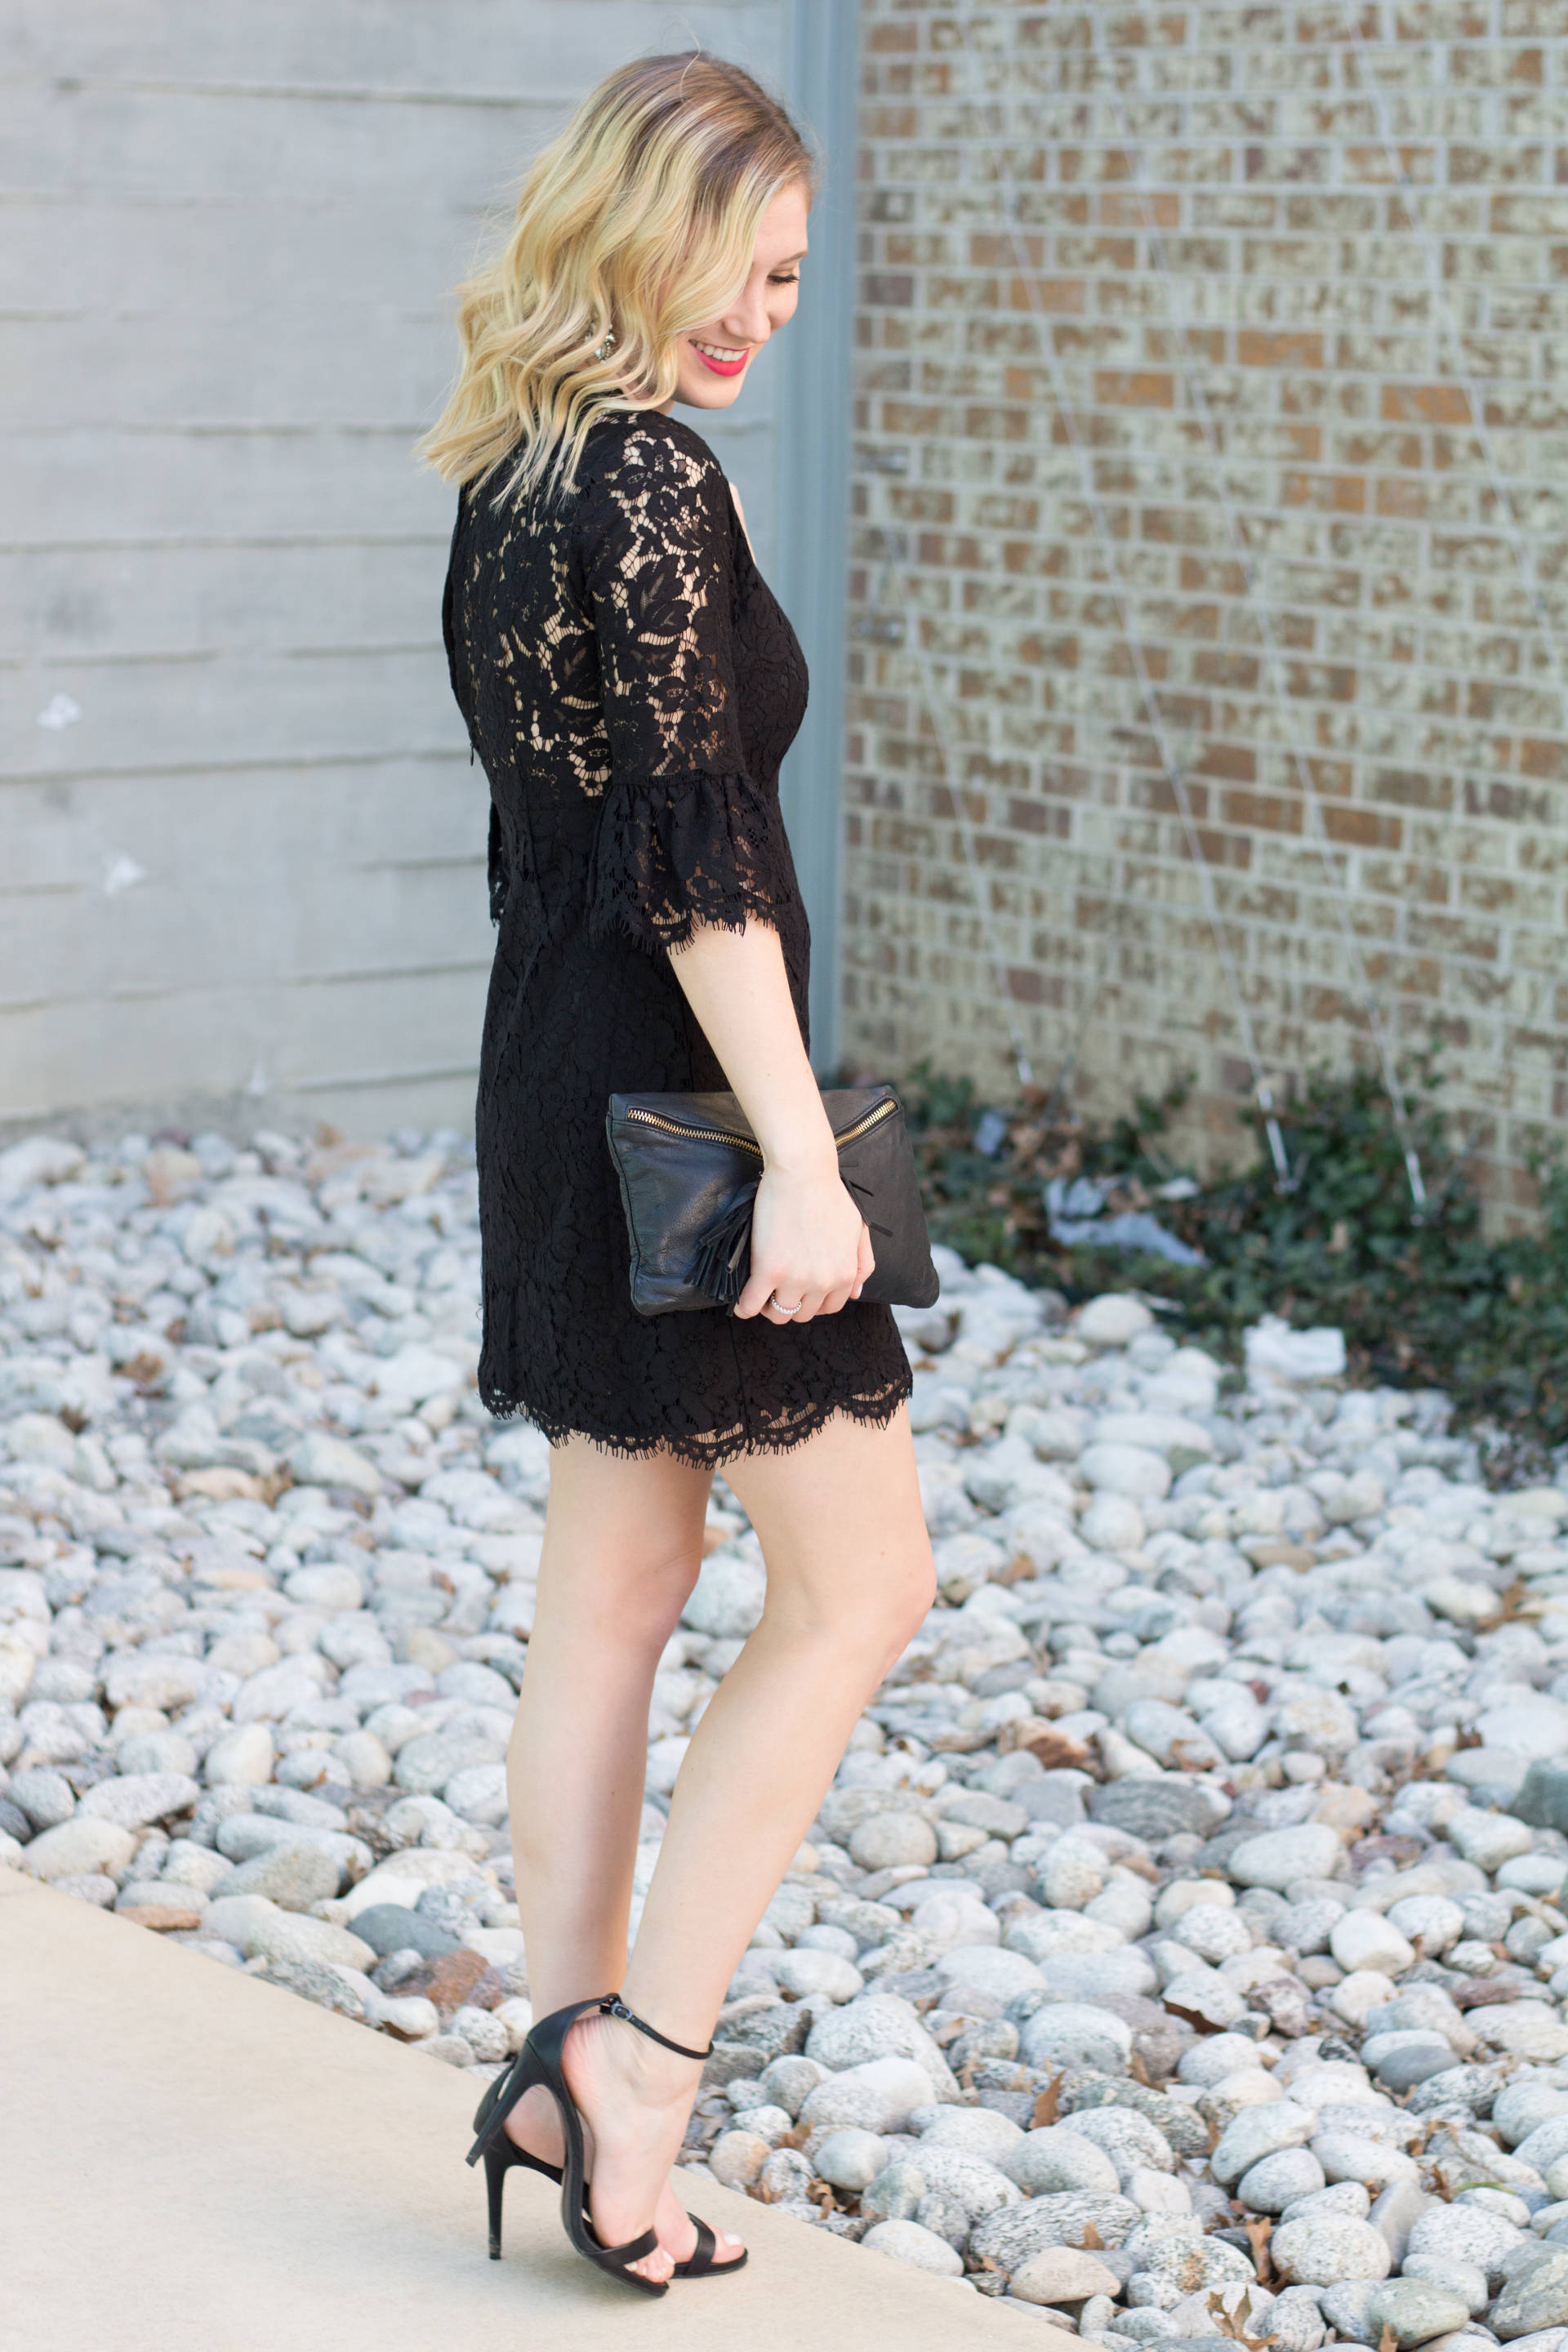 All-Over Lace   Gold-Hatted Lover